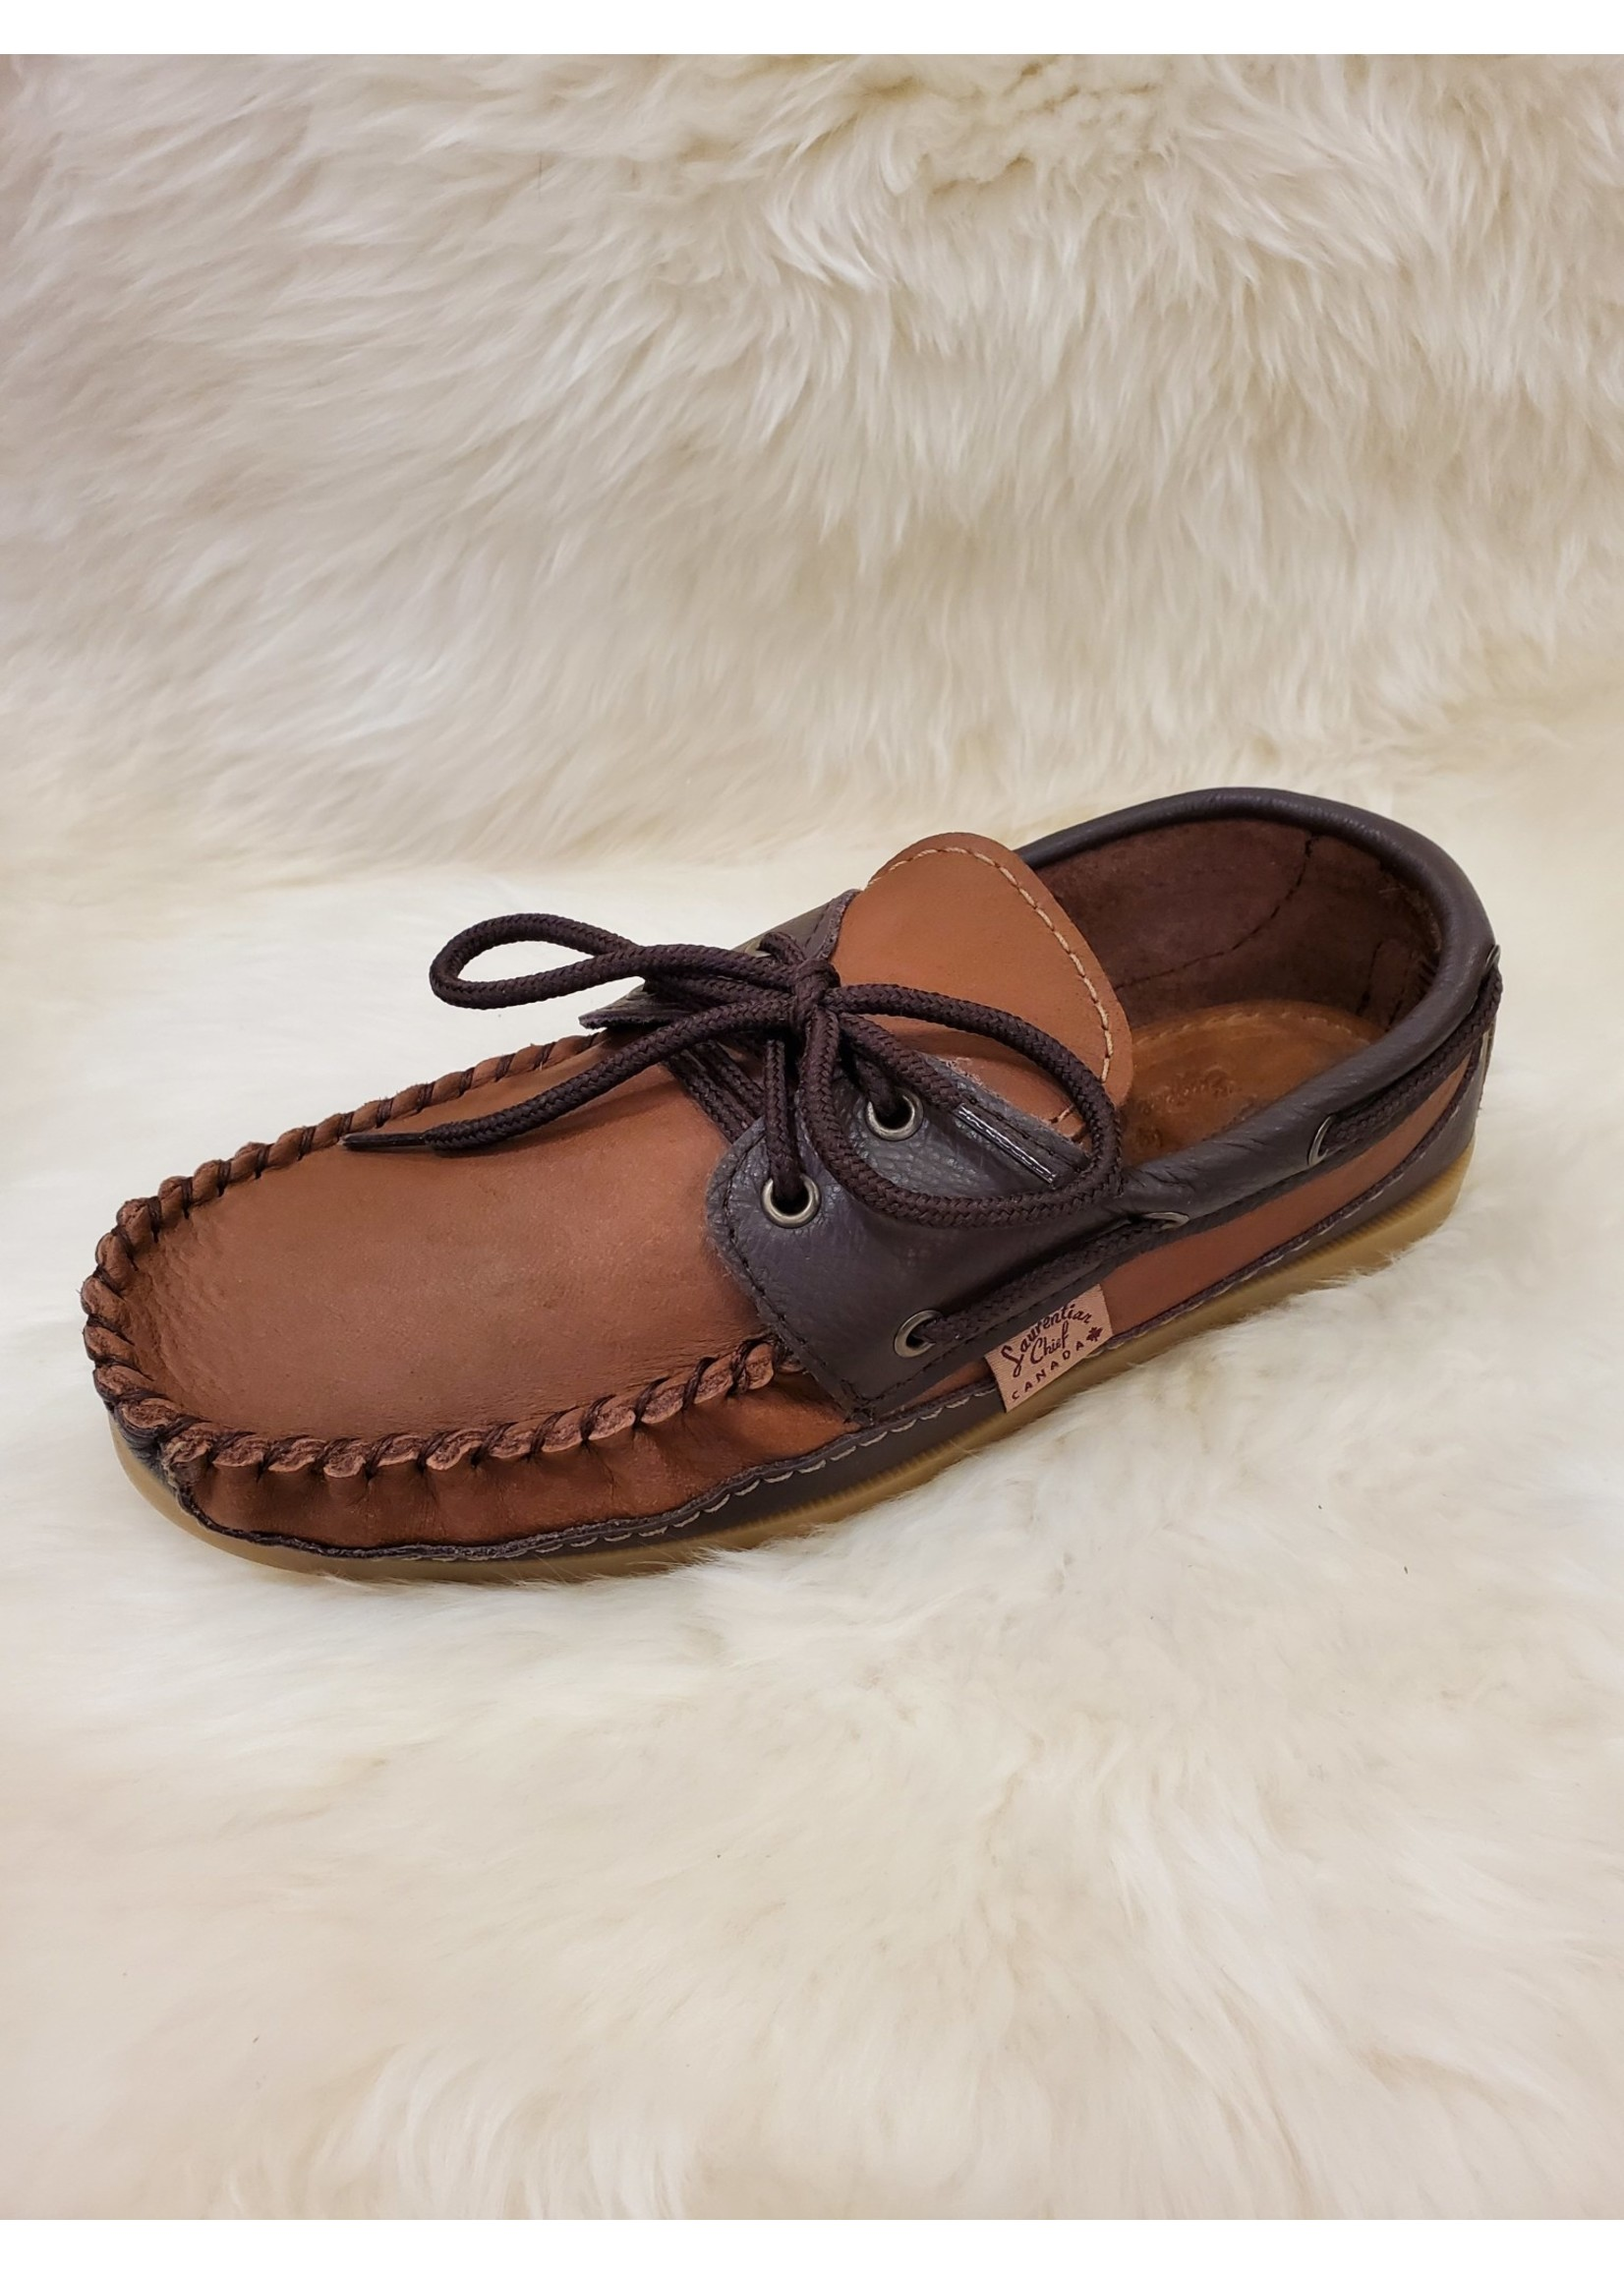 LAURENTIAN CHIEF LEATHER MOCCASINS 37756M